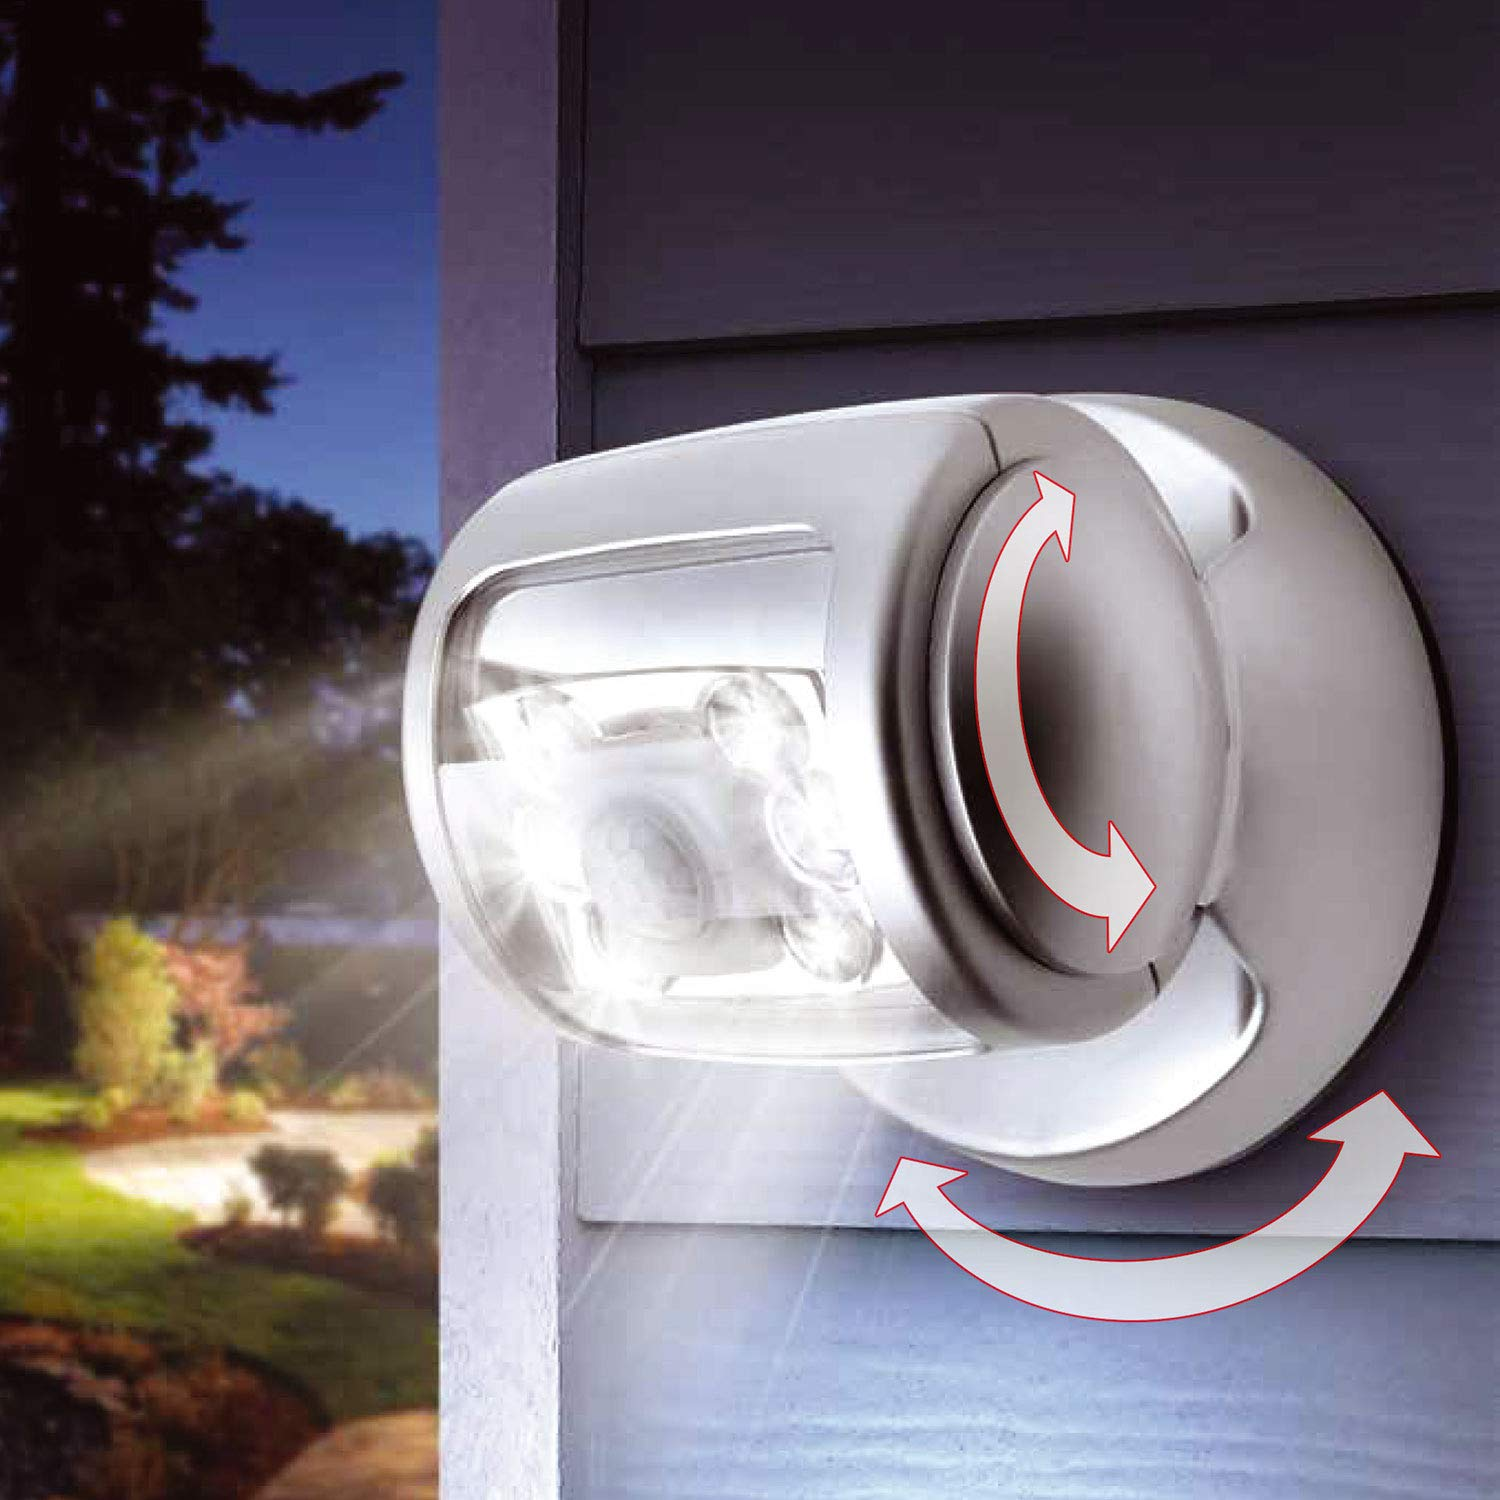 HMSR/® 360/° Motion Power Sensor Wireless LED Porch Light Auto Timer Outdoor Security Water Proof Super Bright Lamp Suitable for Garden Outdoor Fence Patio Deck Yard Home Driveway Stairs Outside Wall